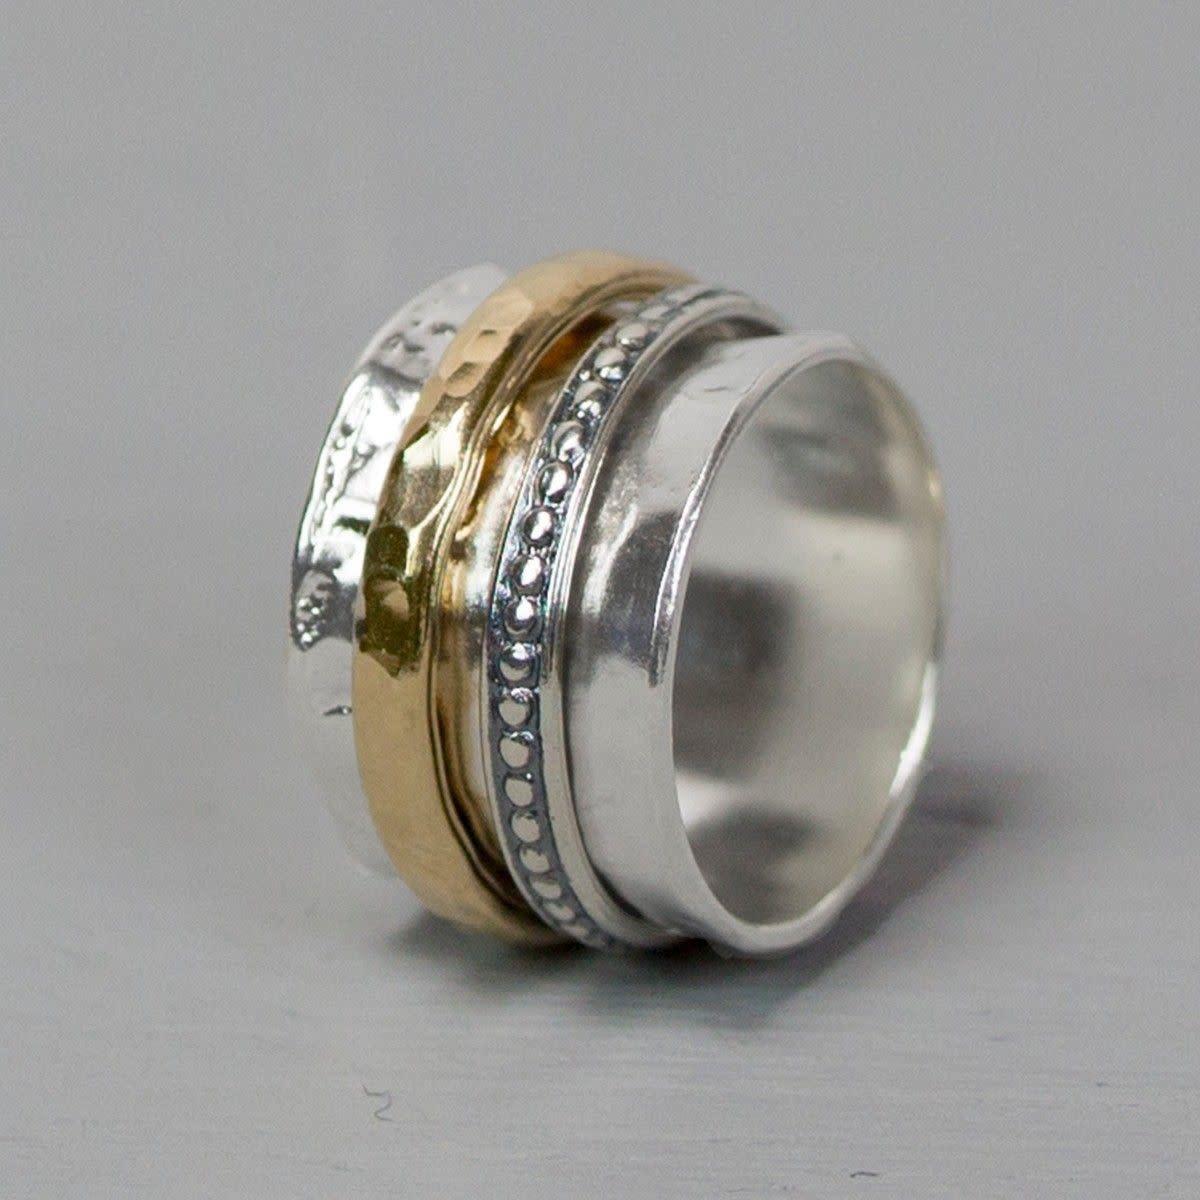 Ring Silver + Gold Filled 20099-5